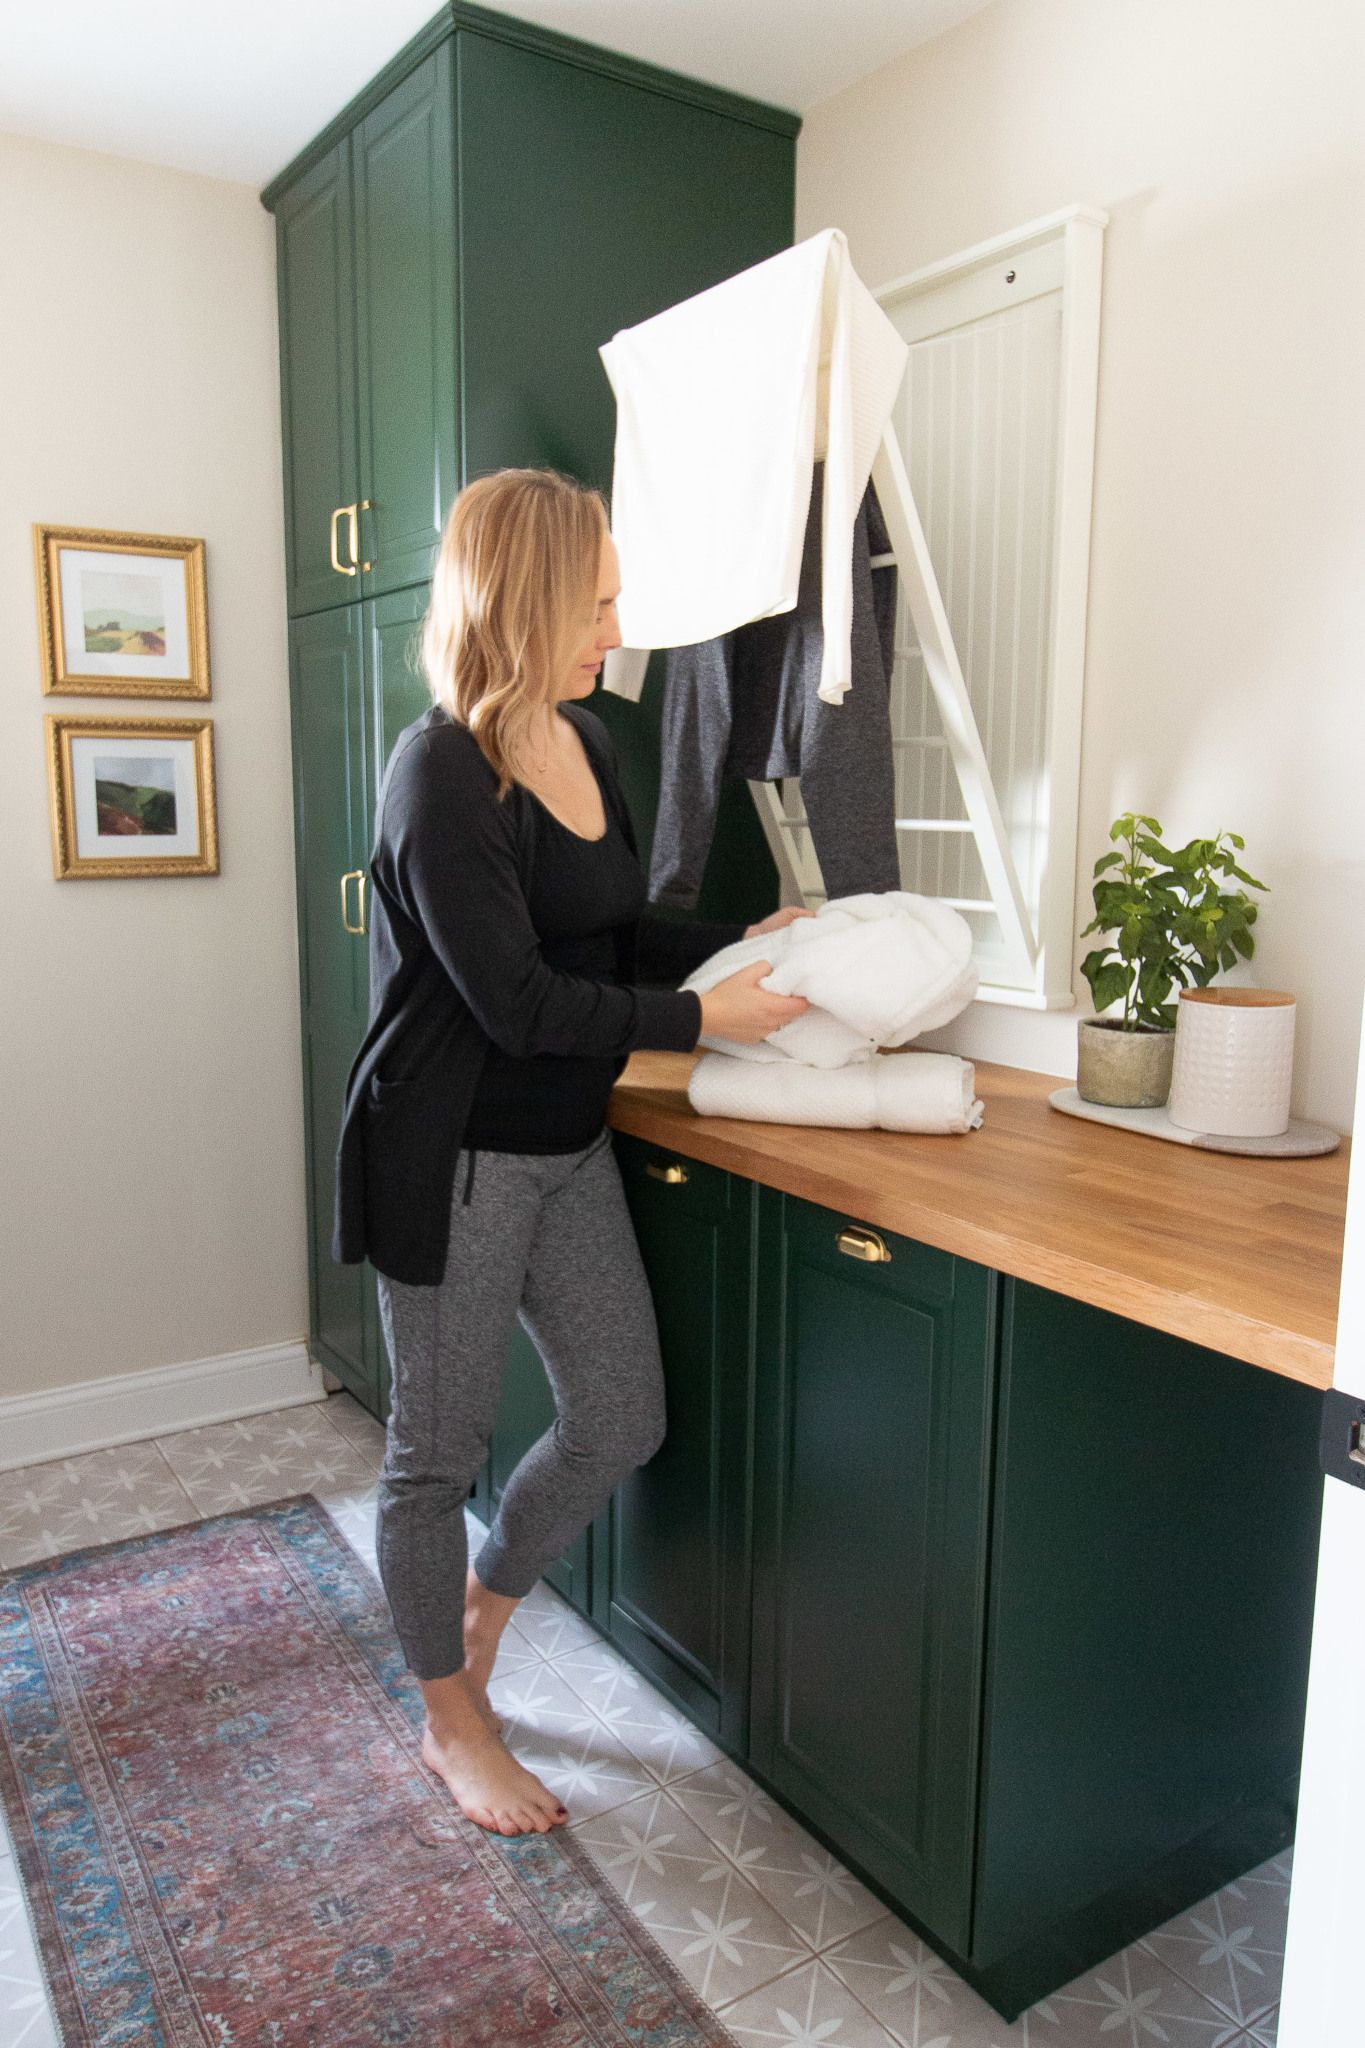 Design Your Own Laundry Room: DIY Laundry Room Makeover Reveal